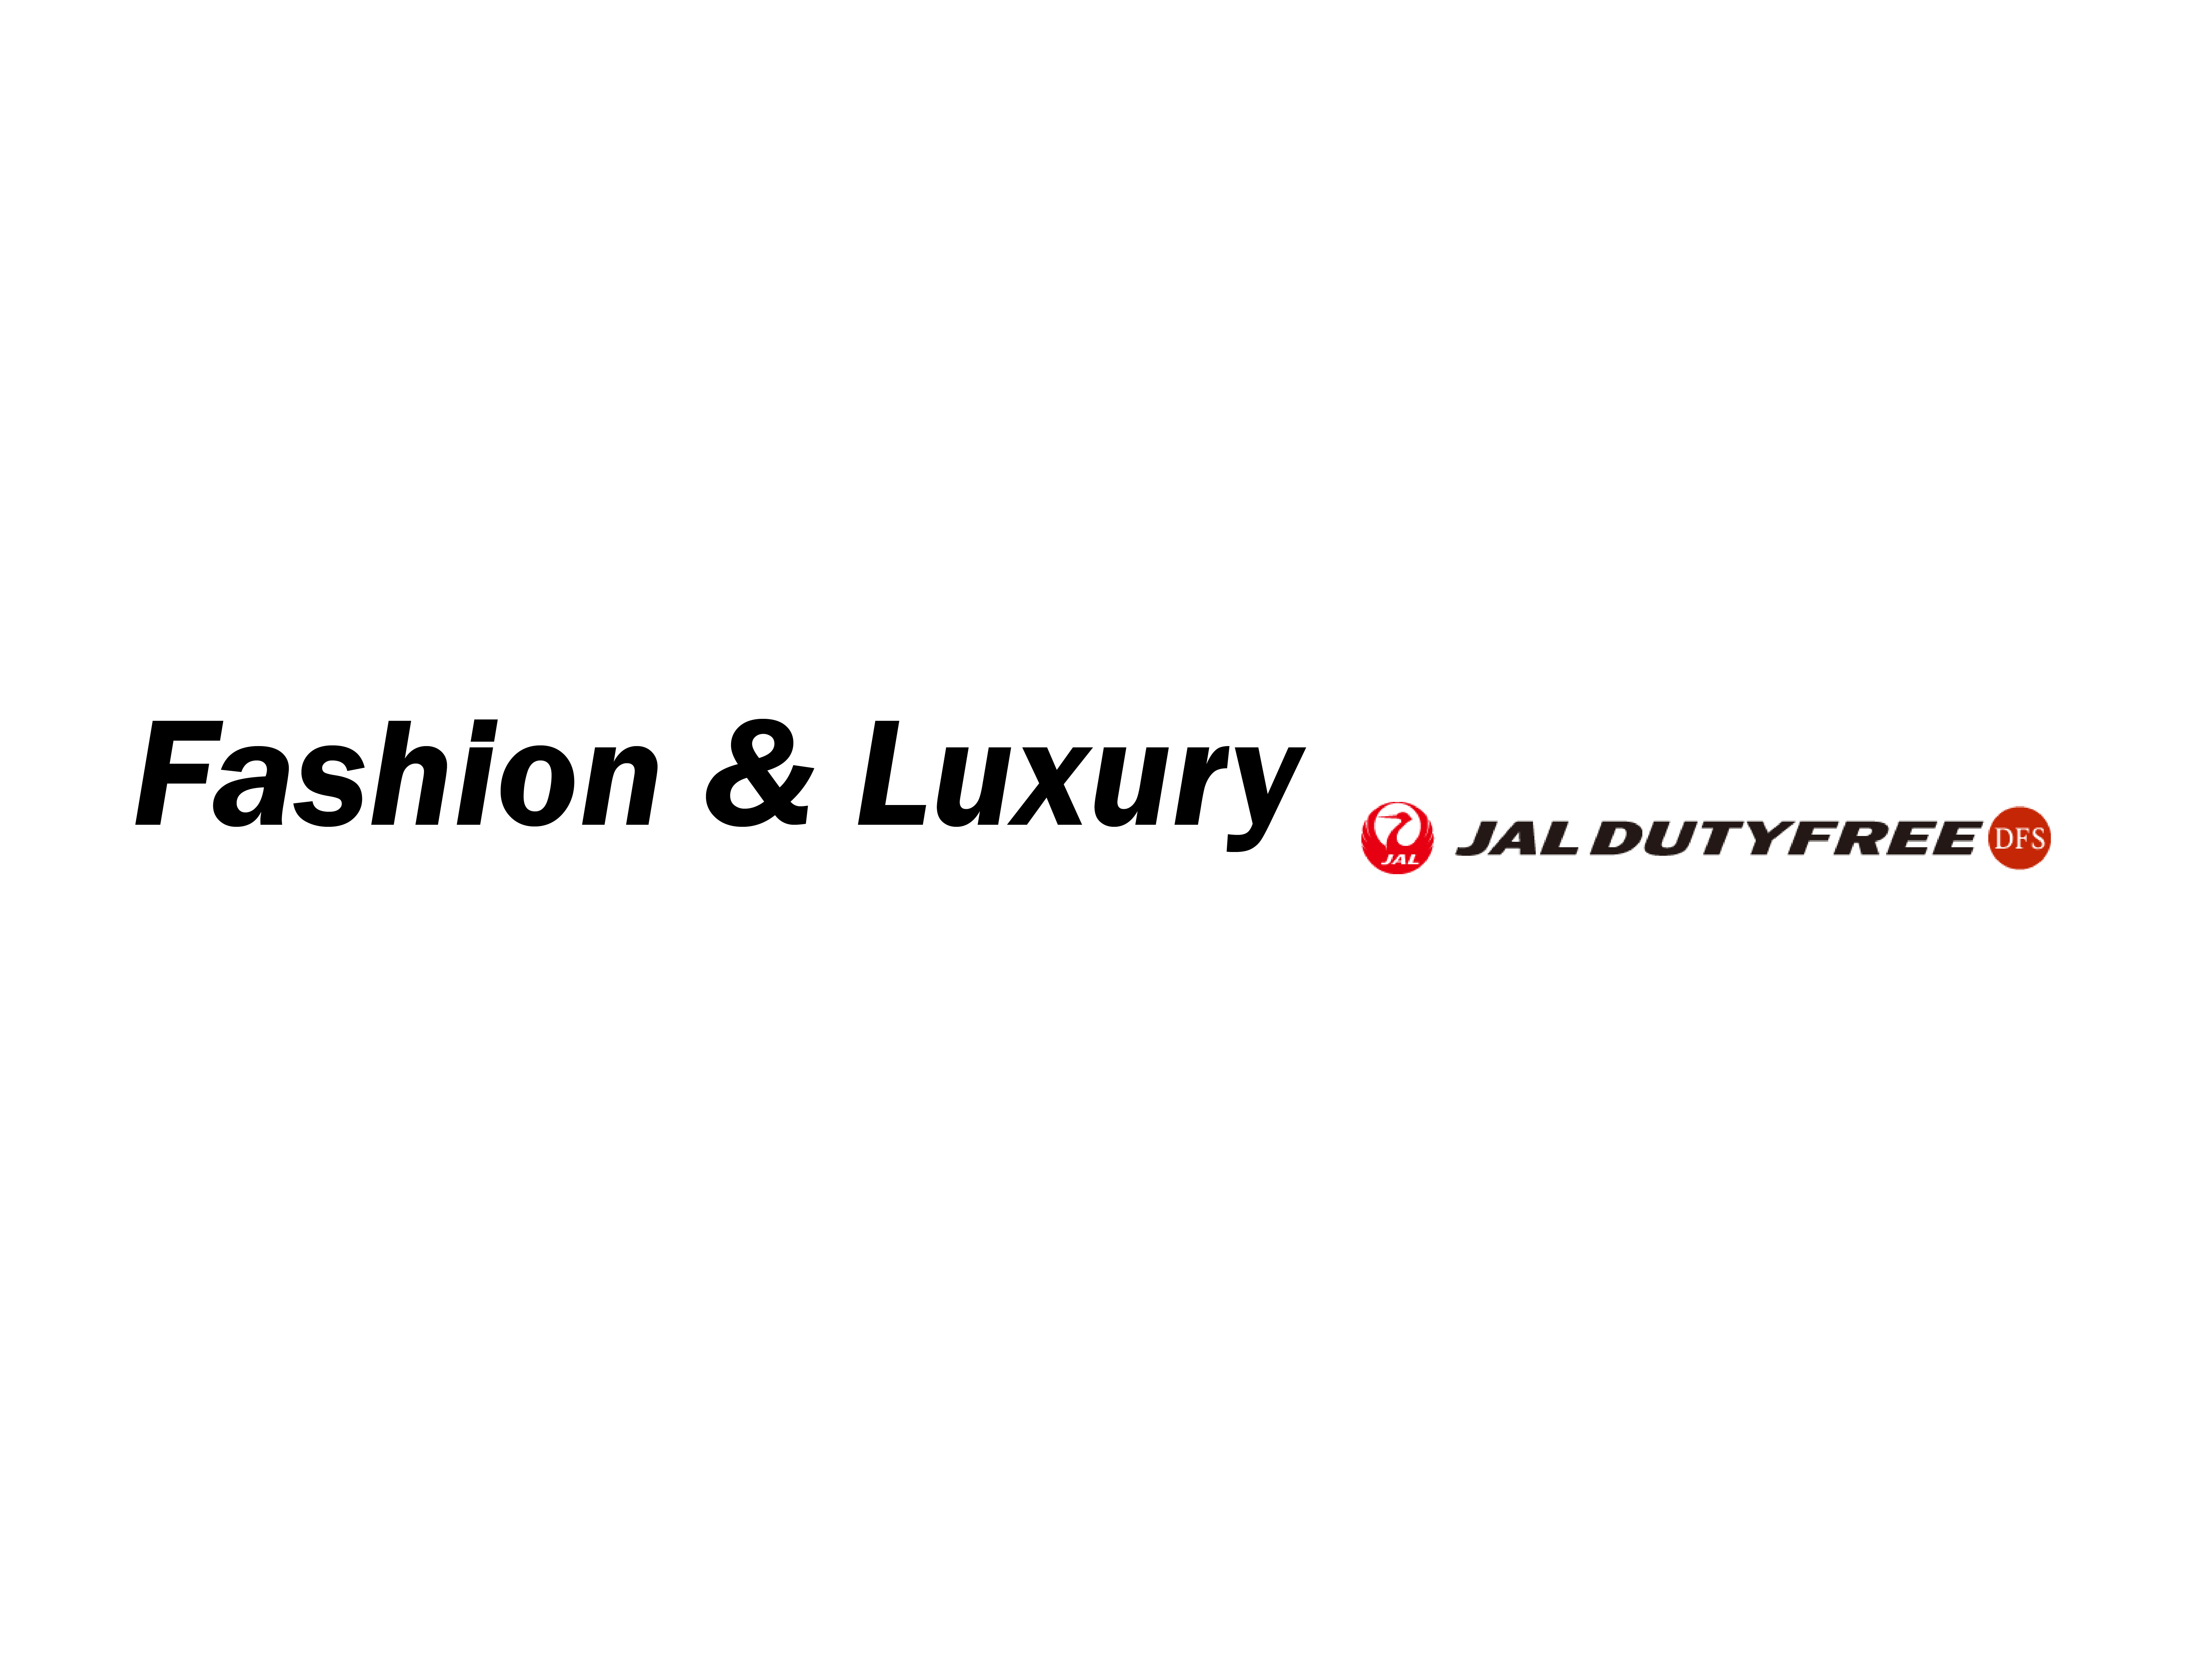 Fashion & Luxuryロゴ